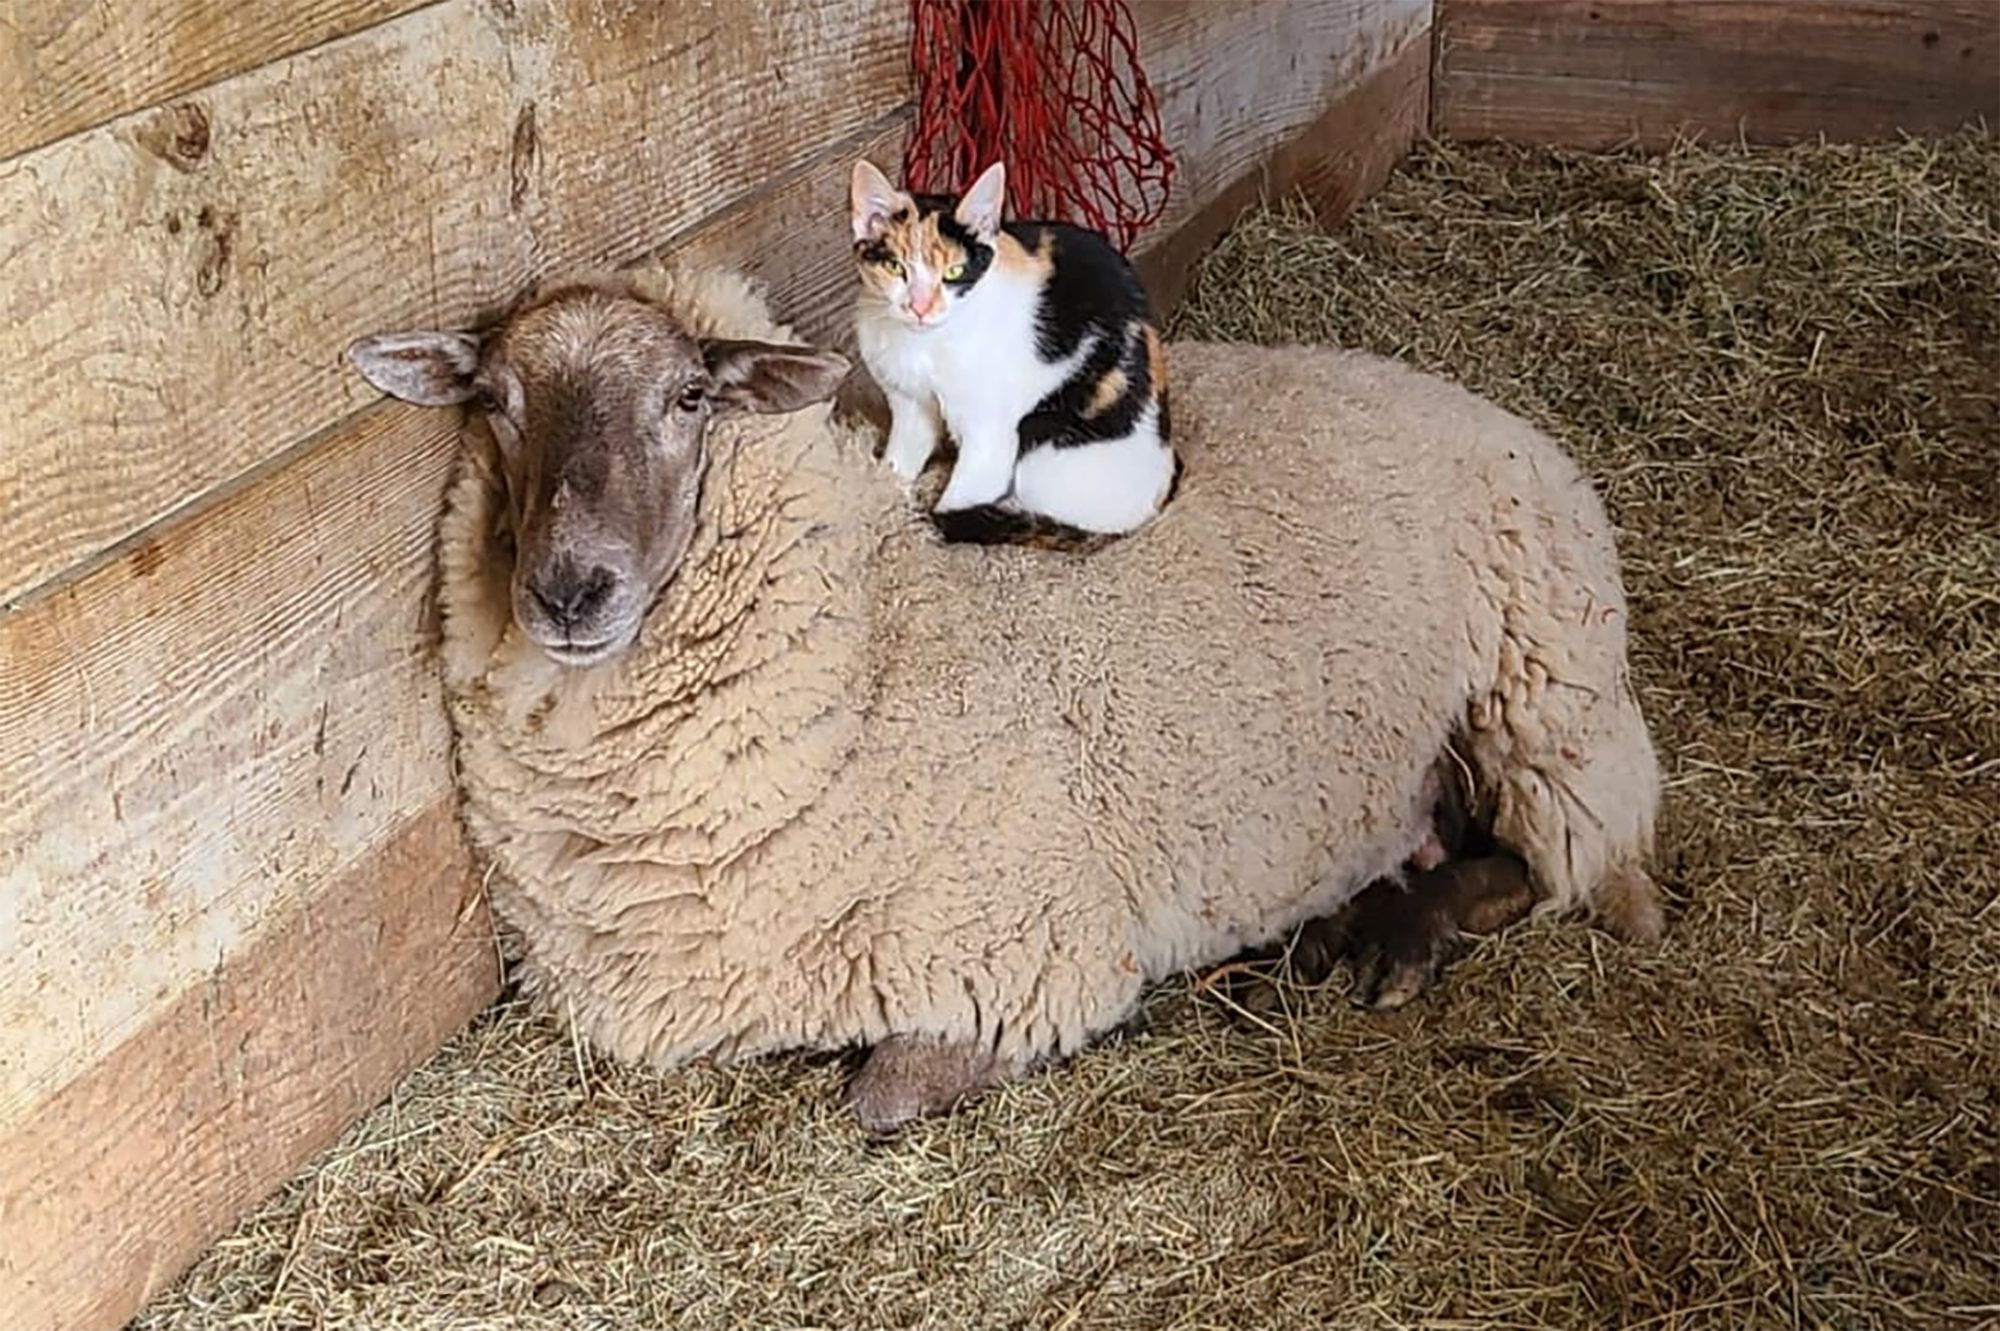 Cat lying on top of sheep